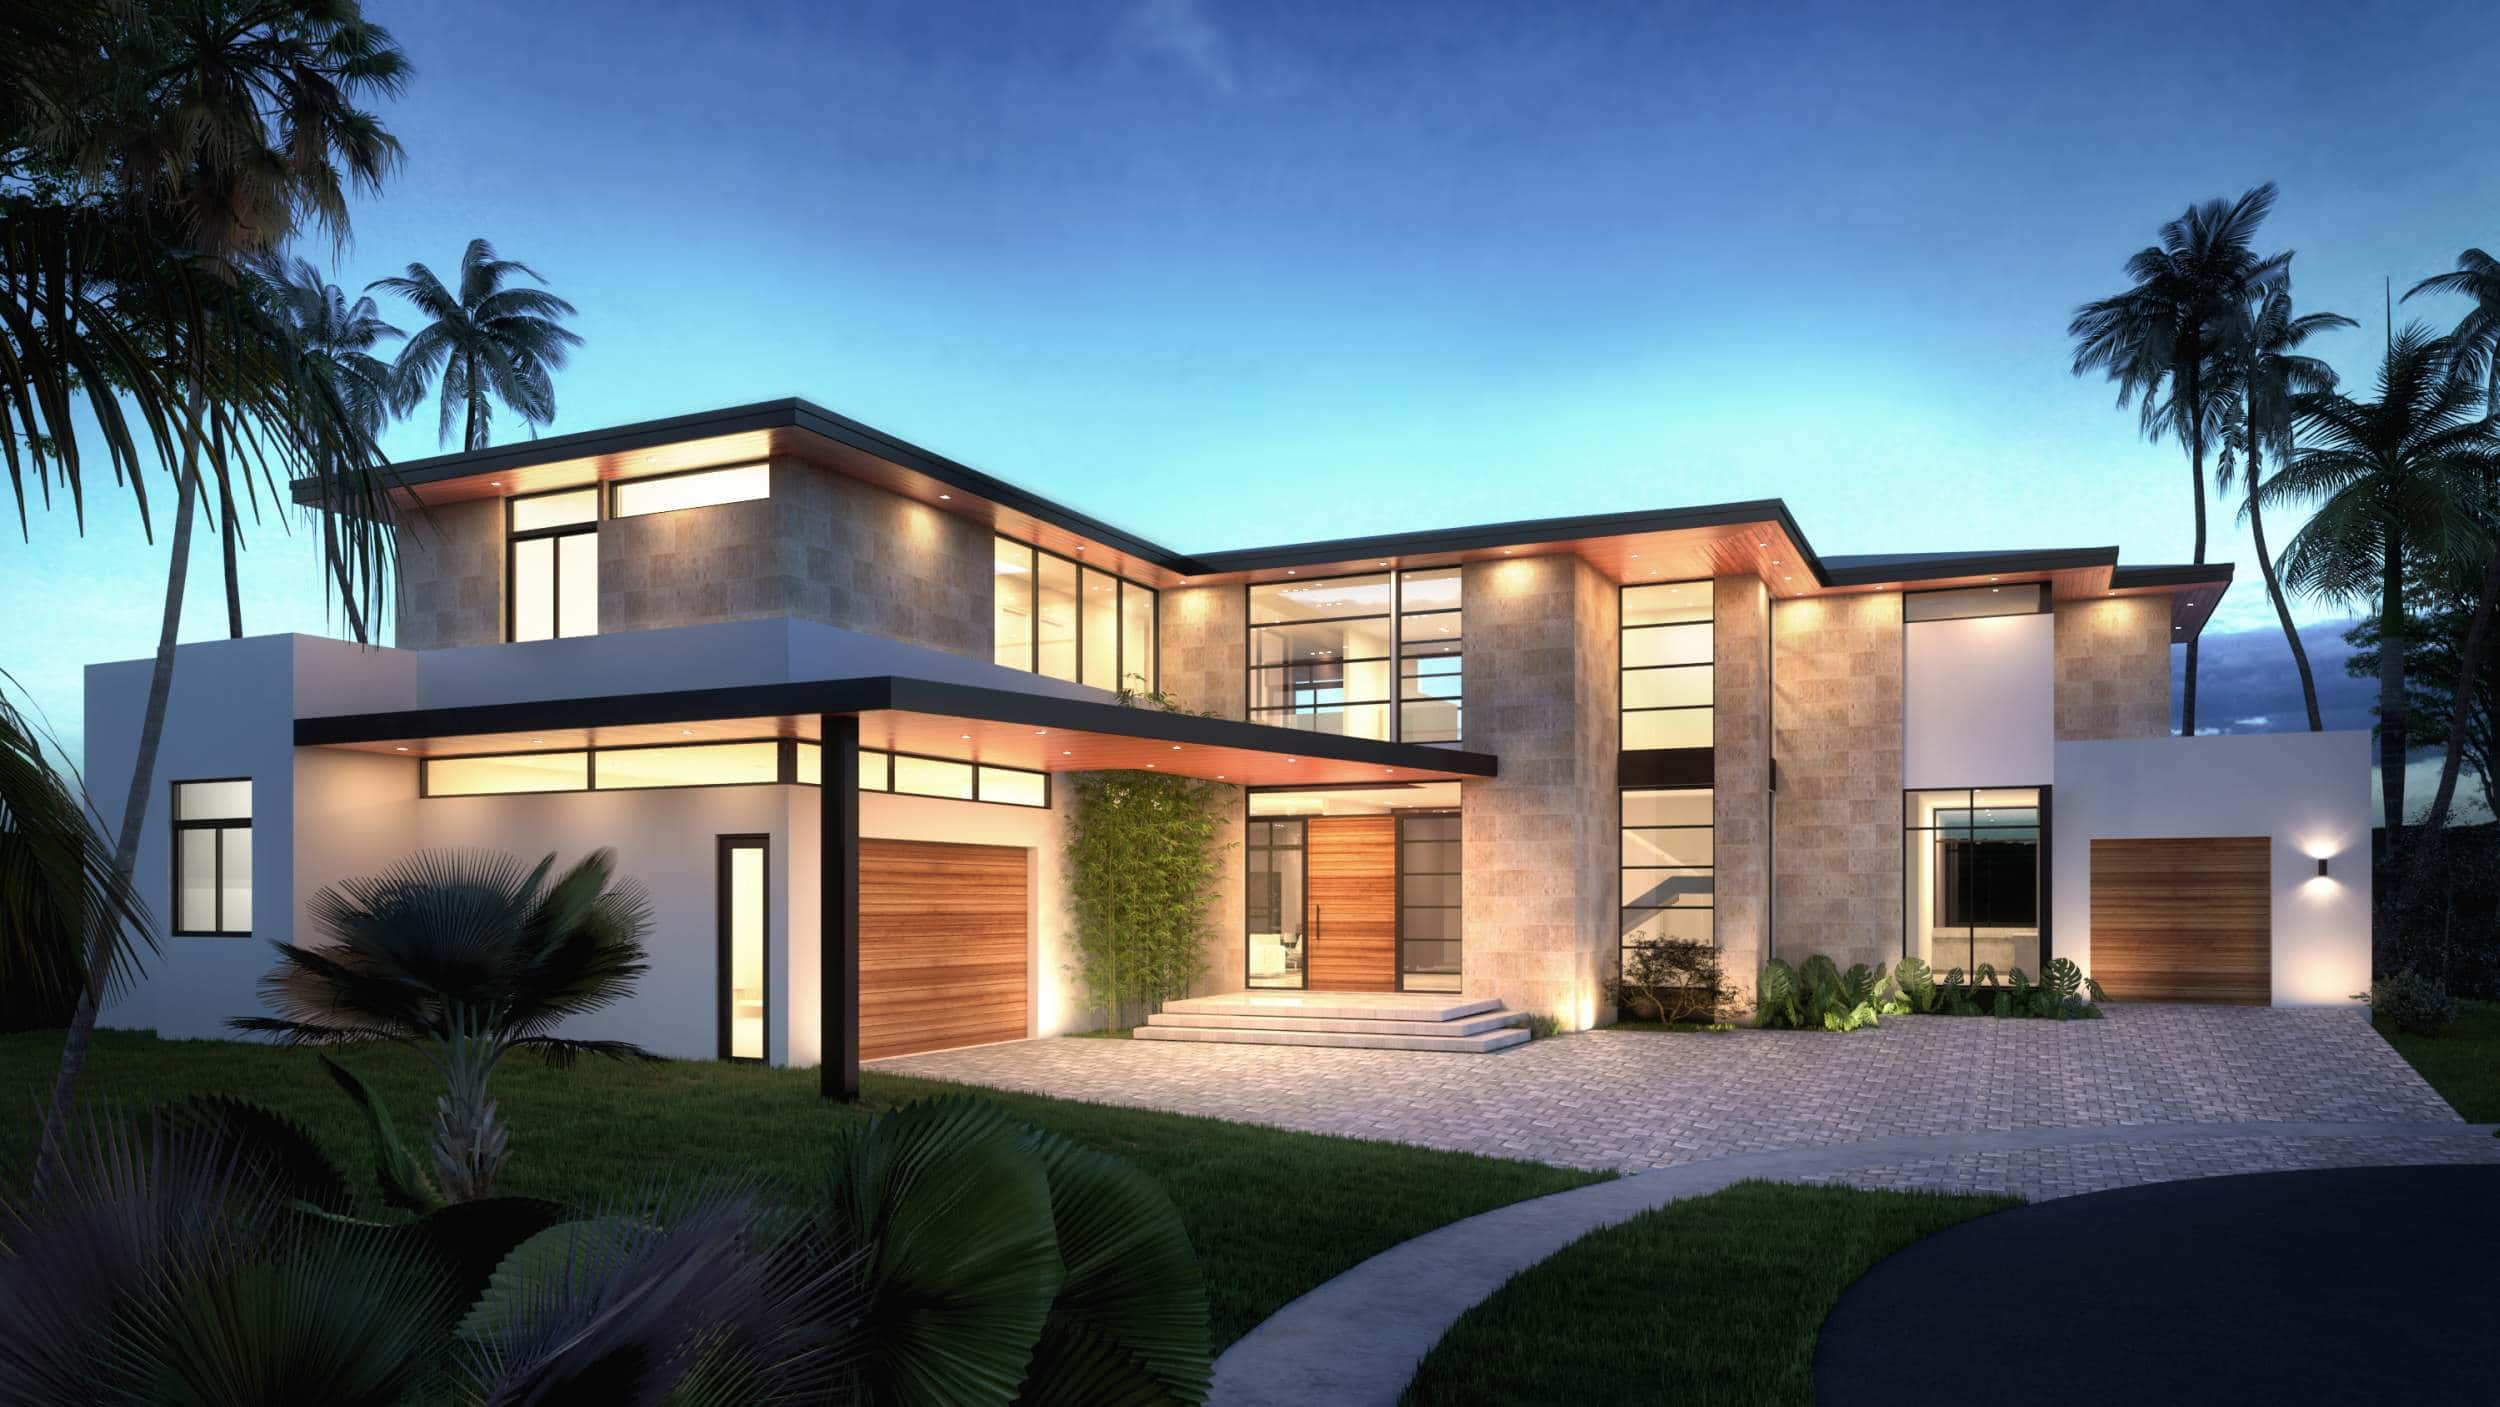 Architecture project in 197 Enchanted Lake Miami, Florida